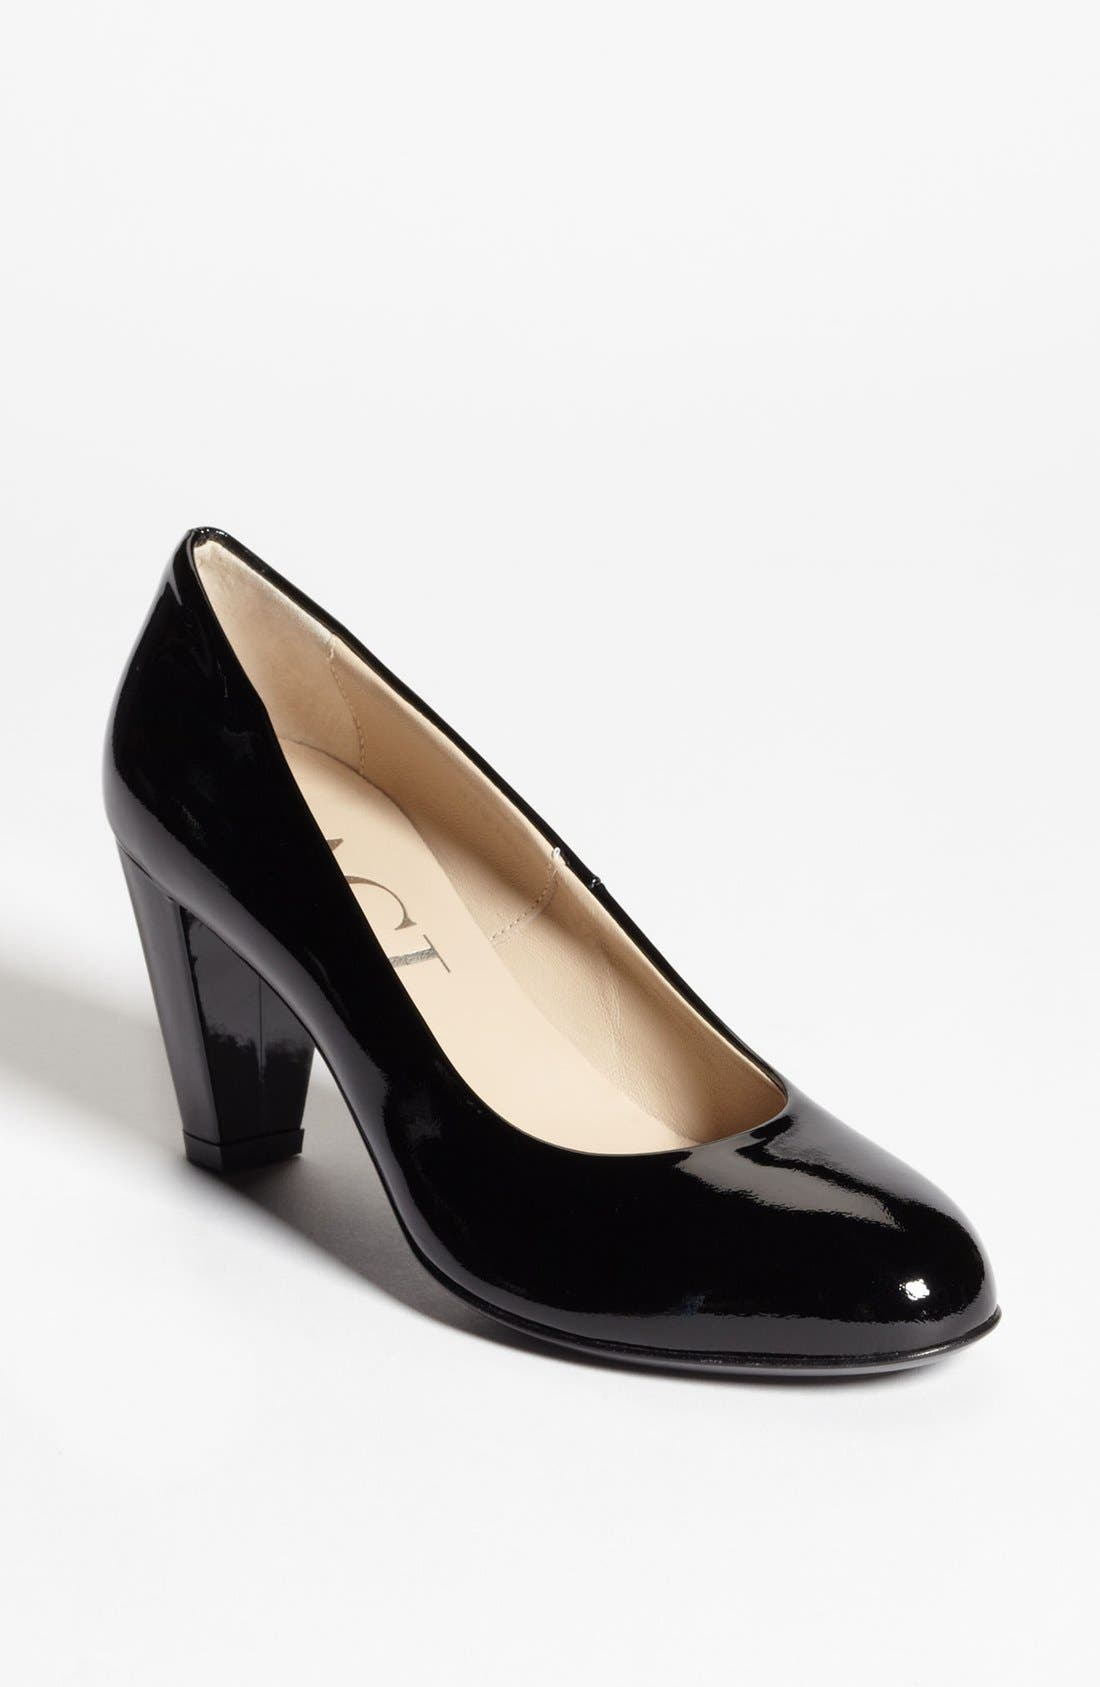 Alternate Image 1 Selected - Attilio Giusti Leombruni Black Patent Pump (Online Only)